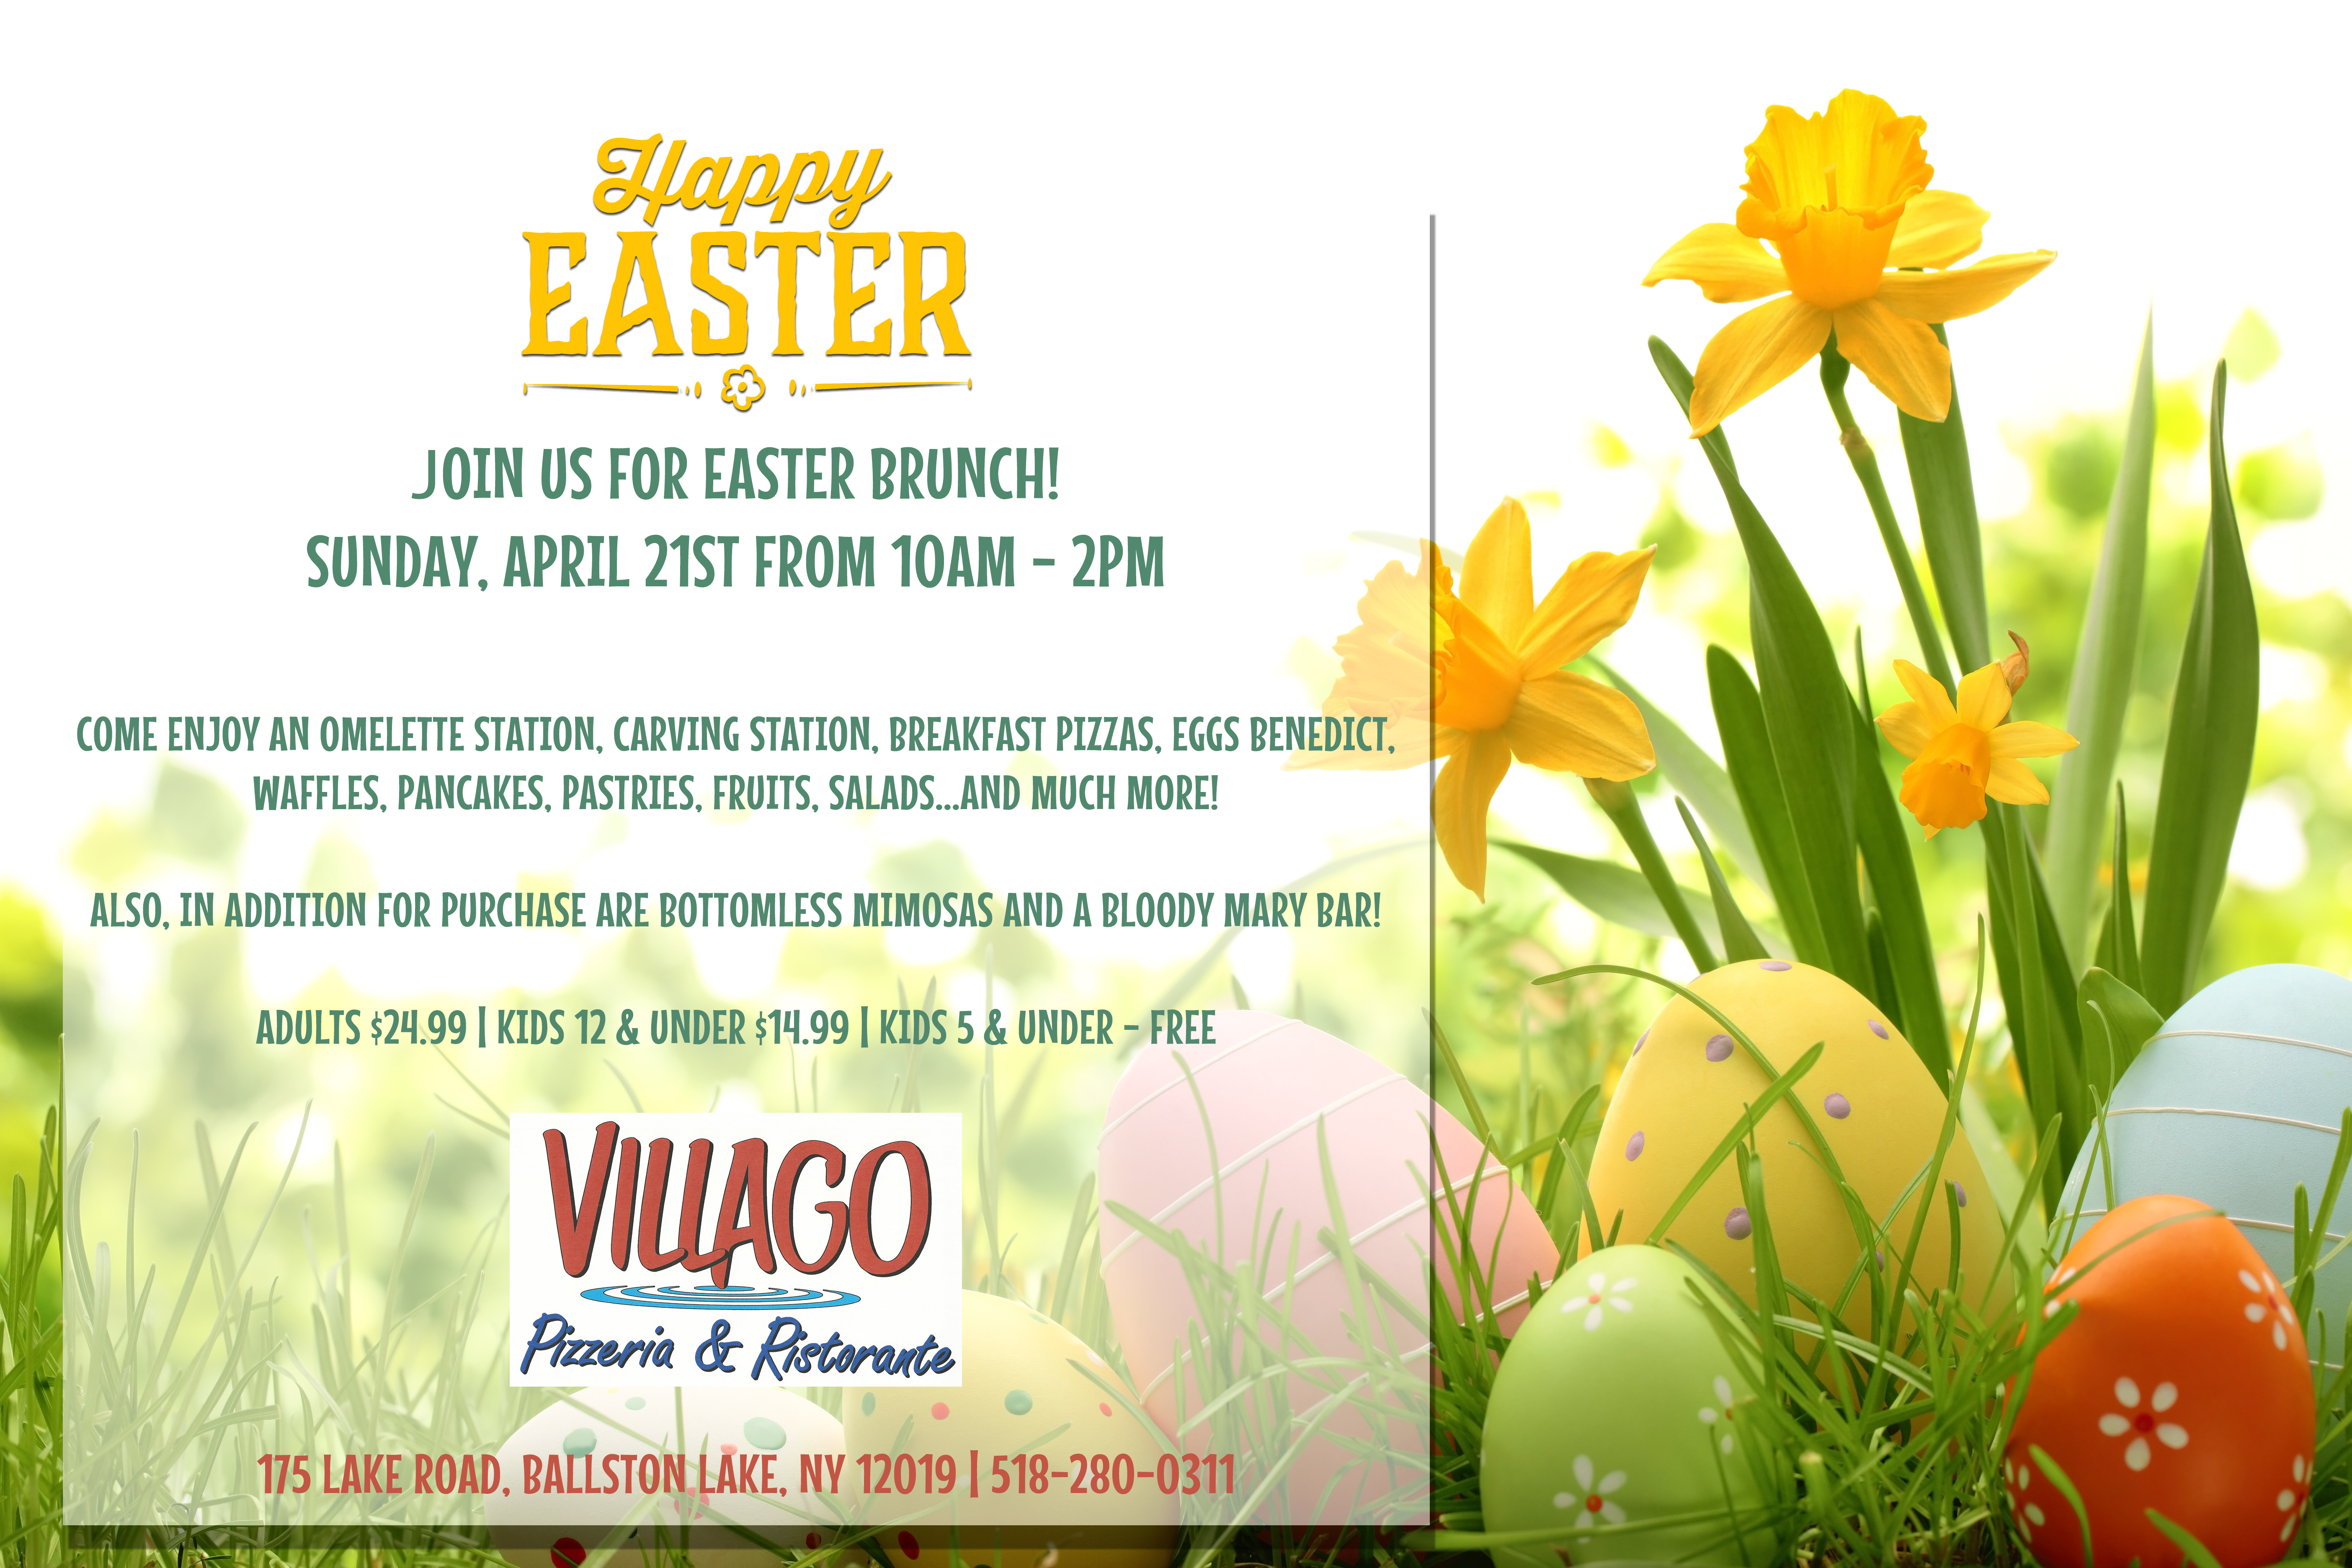 Happy Easter! Join us for Easter Brunch on April21st from 10 am - 2 pm. featuring an omlete station, carving station, breafast pizzas, egg benedict, waffles, pancakes, pastries, fruits, salads and more! Also for purchuse: bottomless mimosa and bloddy mary bar. Adults $24.99, kids (12 and under) $14.99, kids under 5 are free